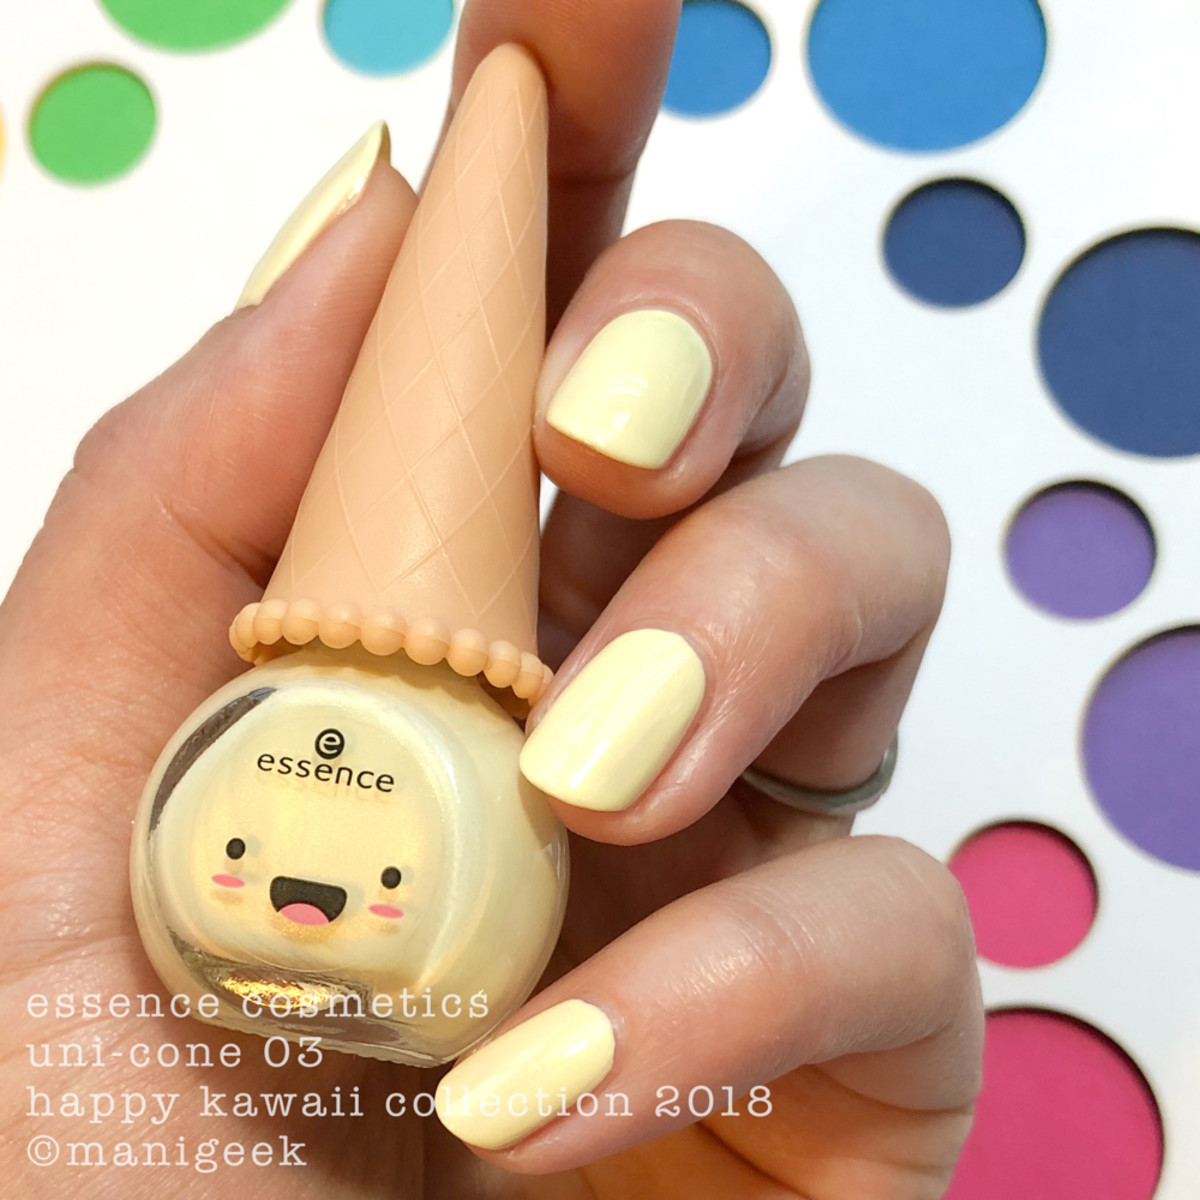 Essence Uni-Cone 03 - Essence Cosmetics Happy Kawaii Collection